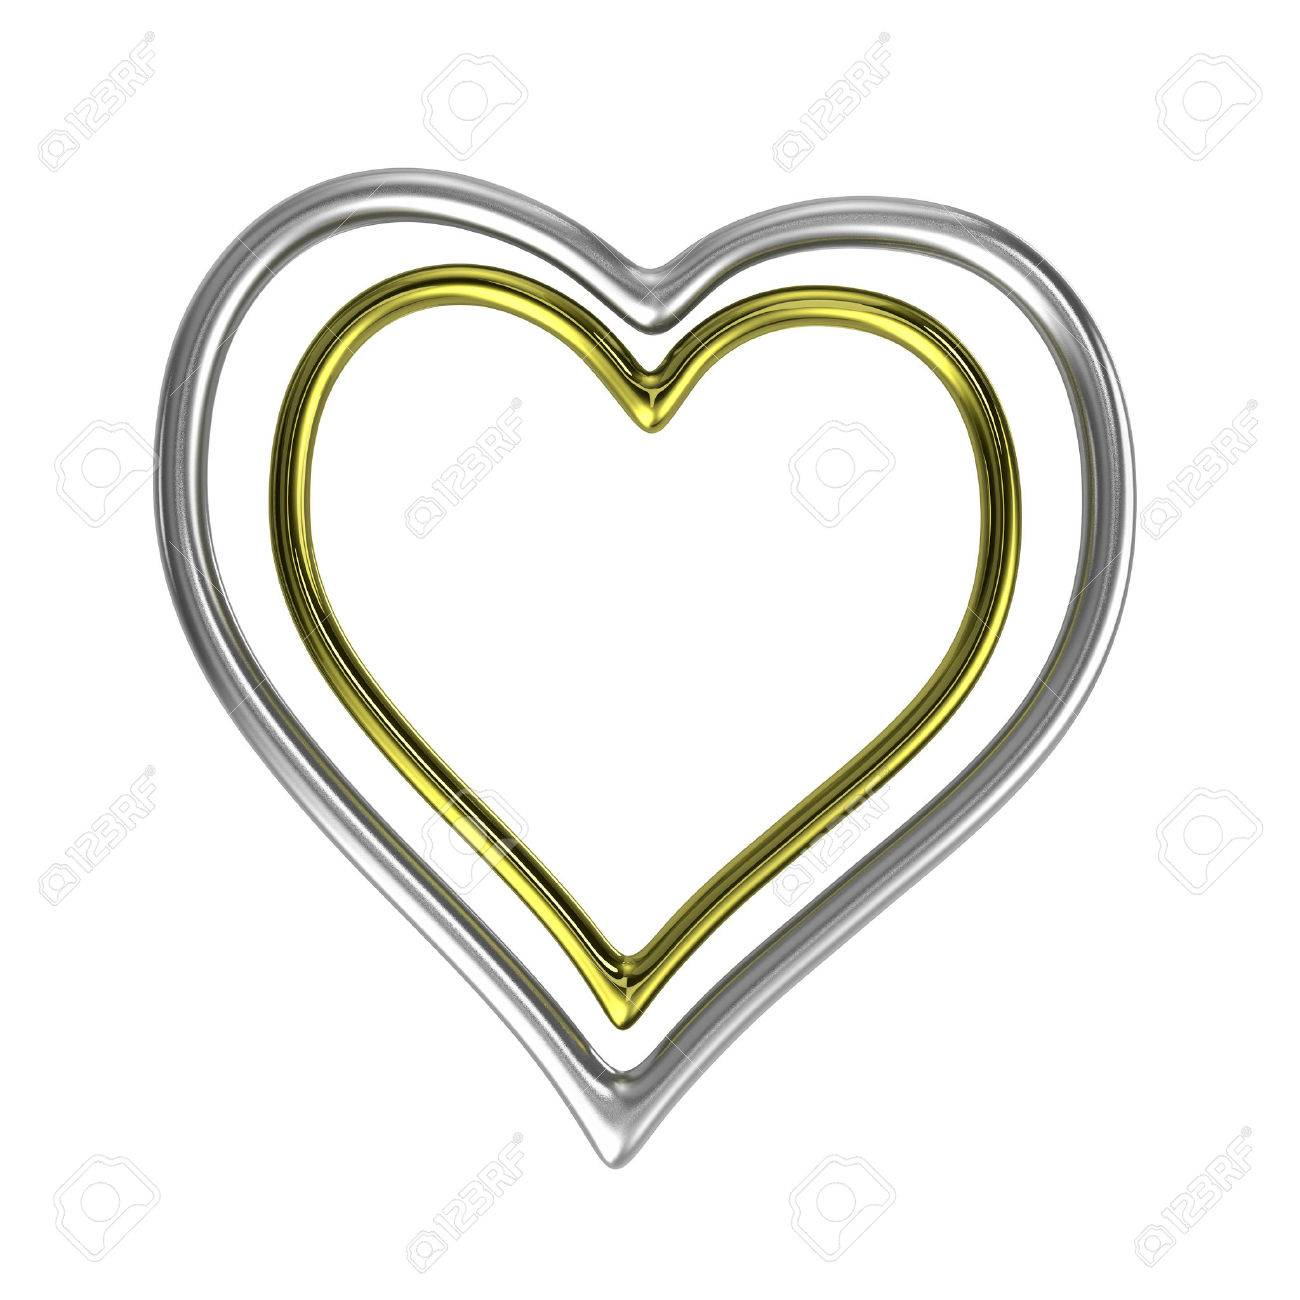 Two Concentric Heart Shaped Golden And Silver Rings Frame Isolated ...